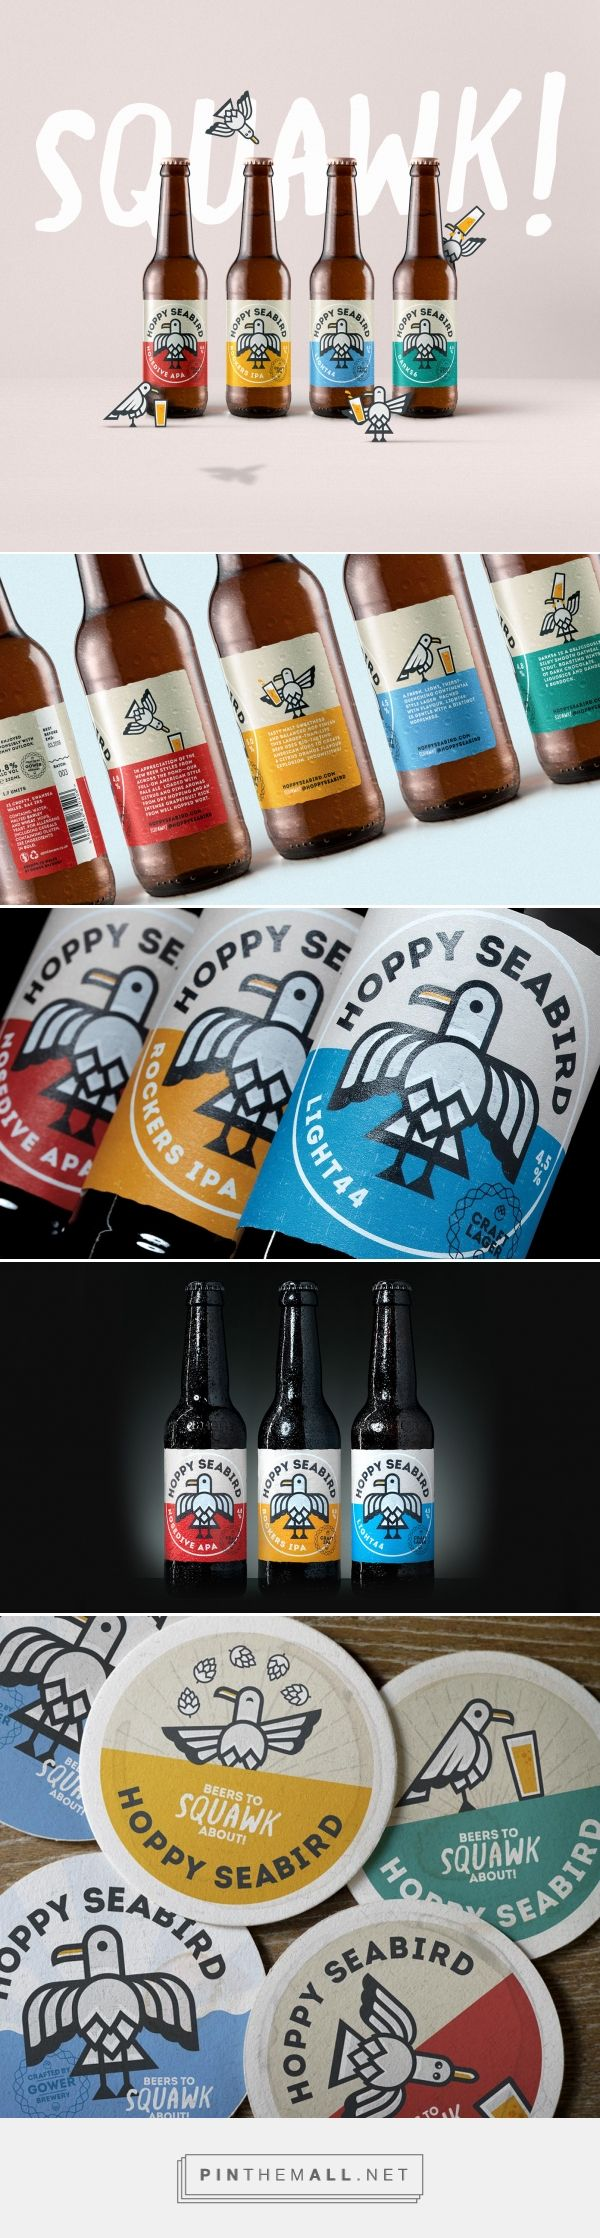 Hoppy Seabird beer label design by Limegreentangerine - http://www.packagingoftheworld.com/2017/03/hoppy-seabird.html